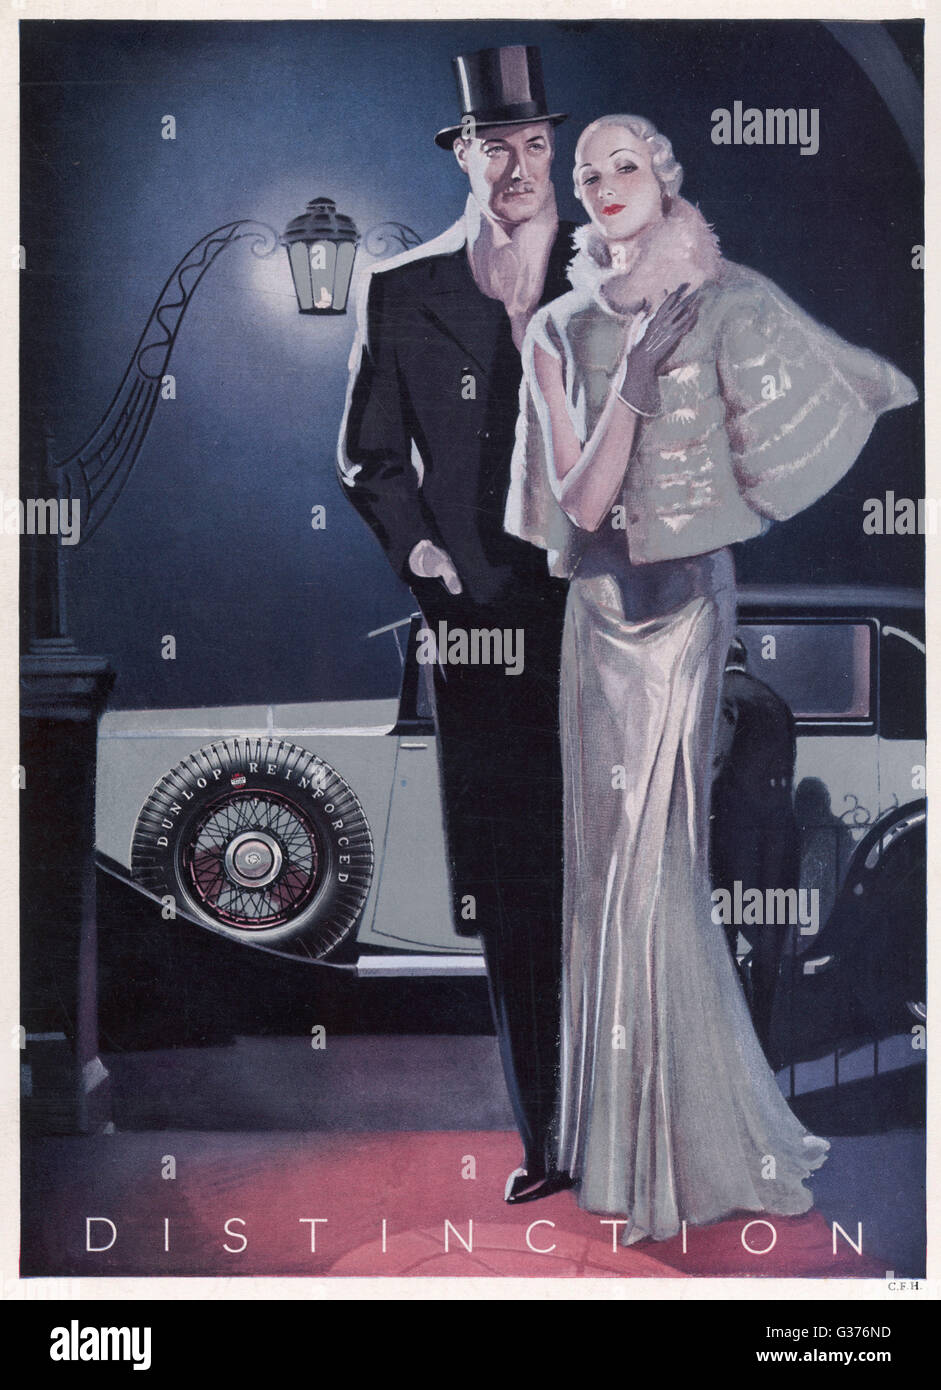 Advert for Dunlop tyres showing a glamorous 1930s couple dressed up for an evening out on the town.  1933 - Stock Image